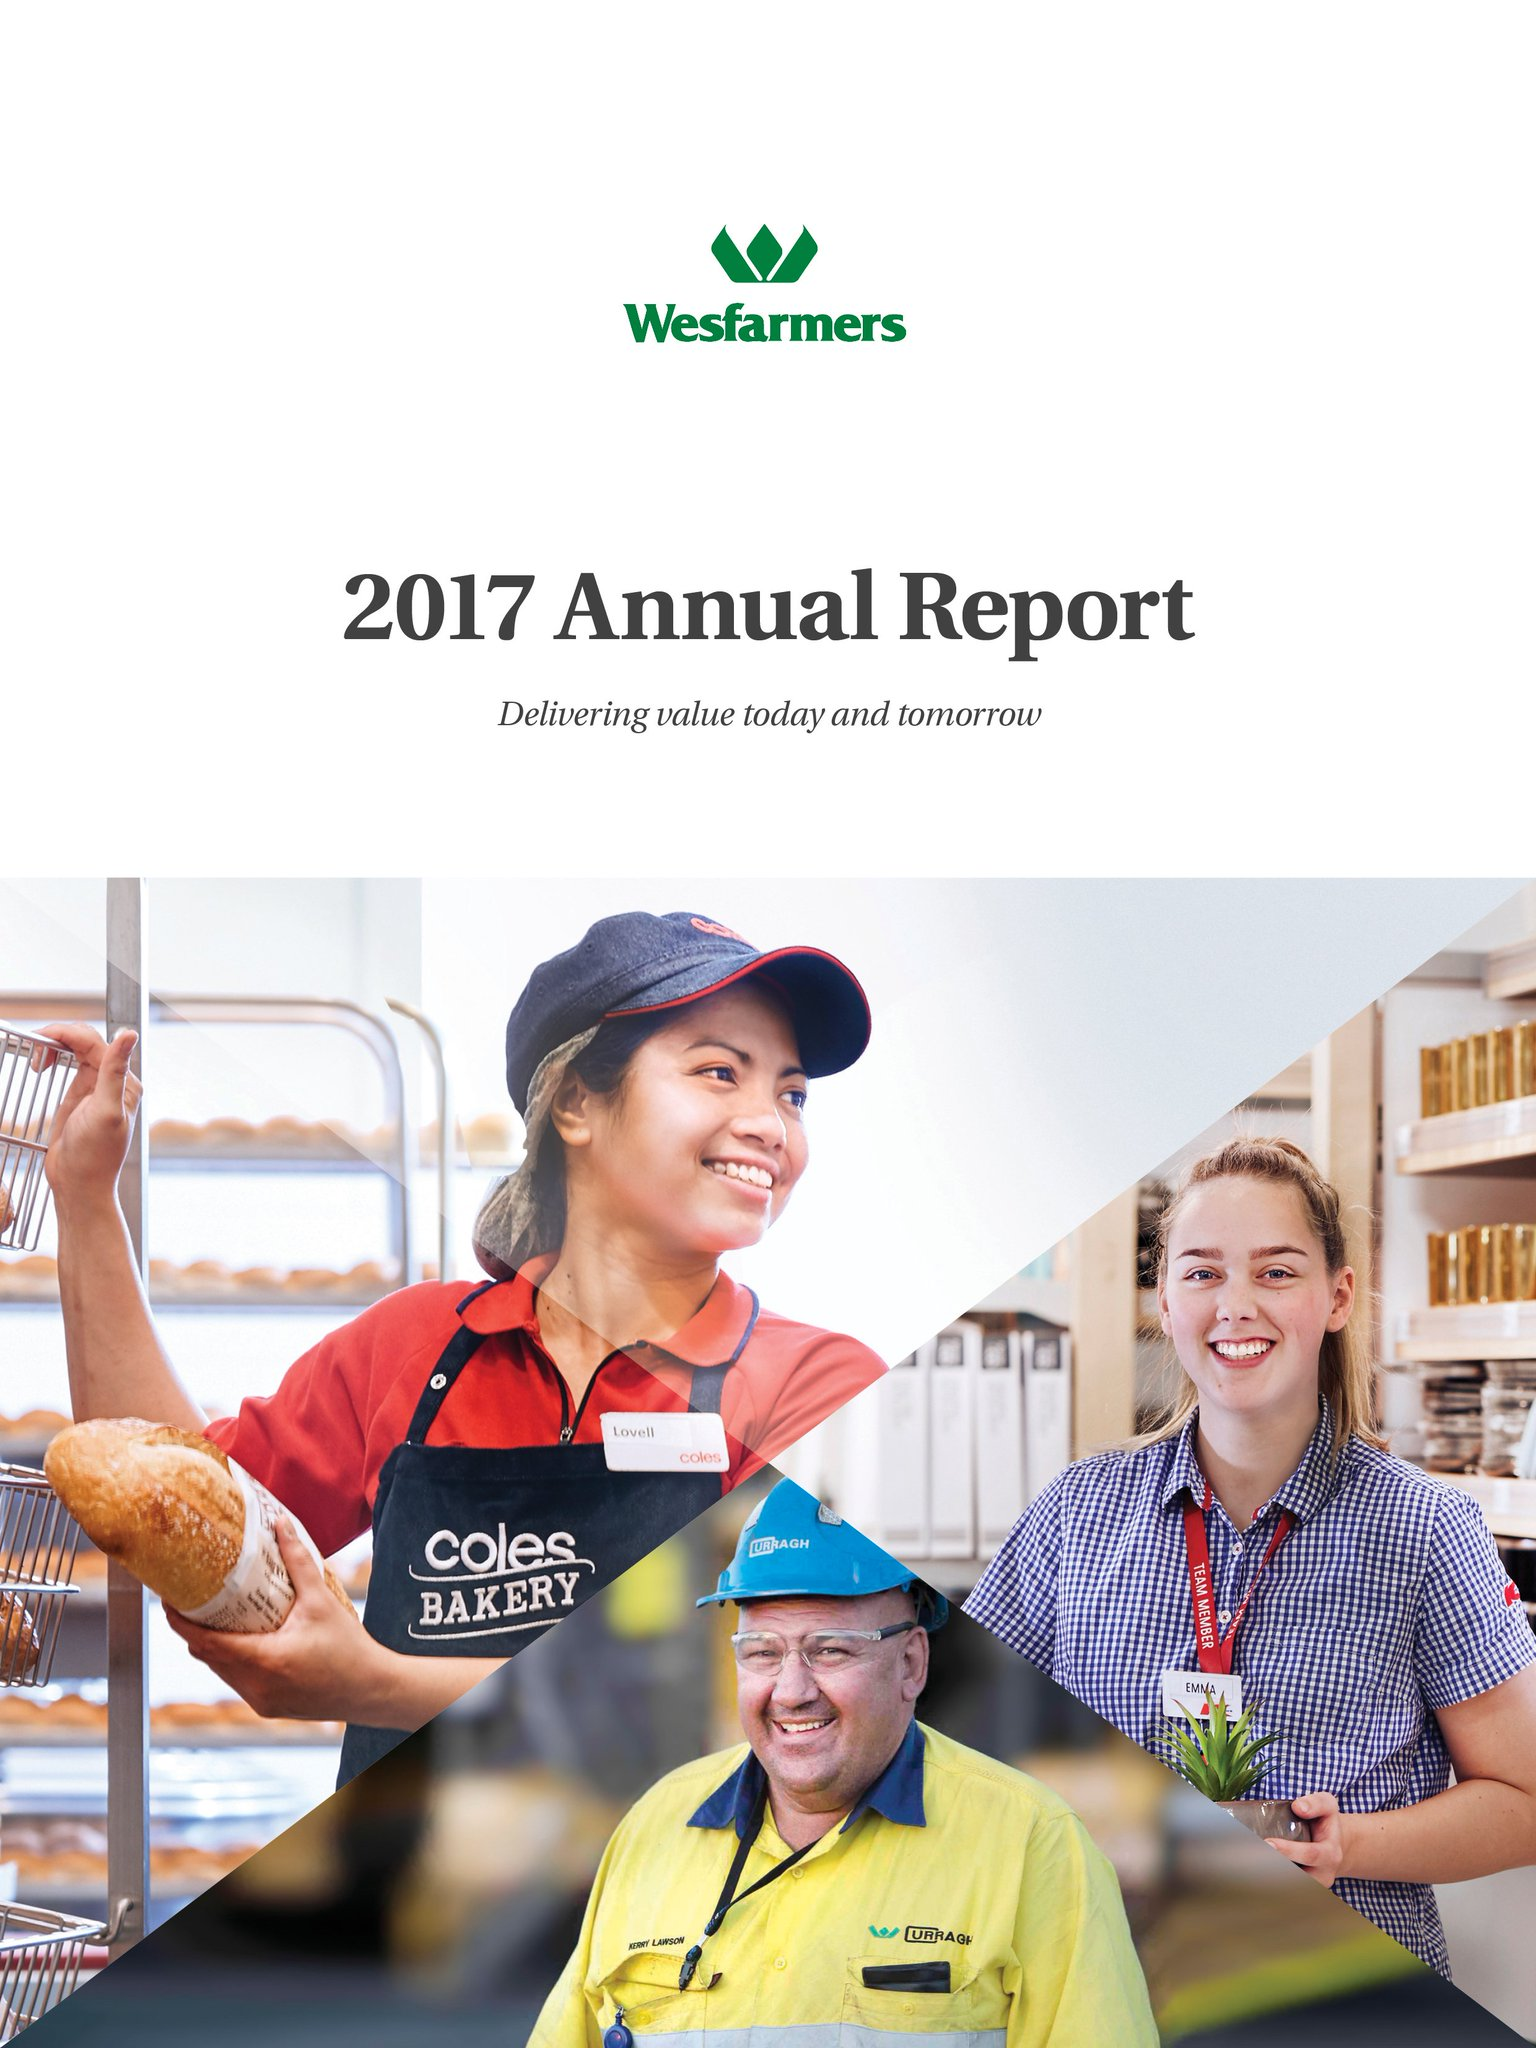 Wesfarmers Limited On Twitter Our Balance Sheet Is Strong It Can Be An Underrated Asset But We Are Very Focused On It Md Rgoyder 2017 Ar Https T Co Iwx1kfw6tr Https T Co Czyjvcstma